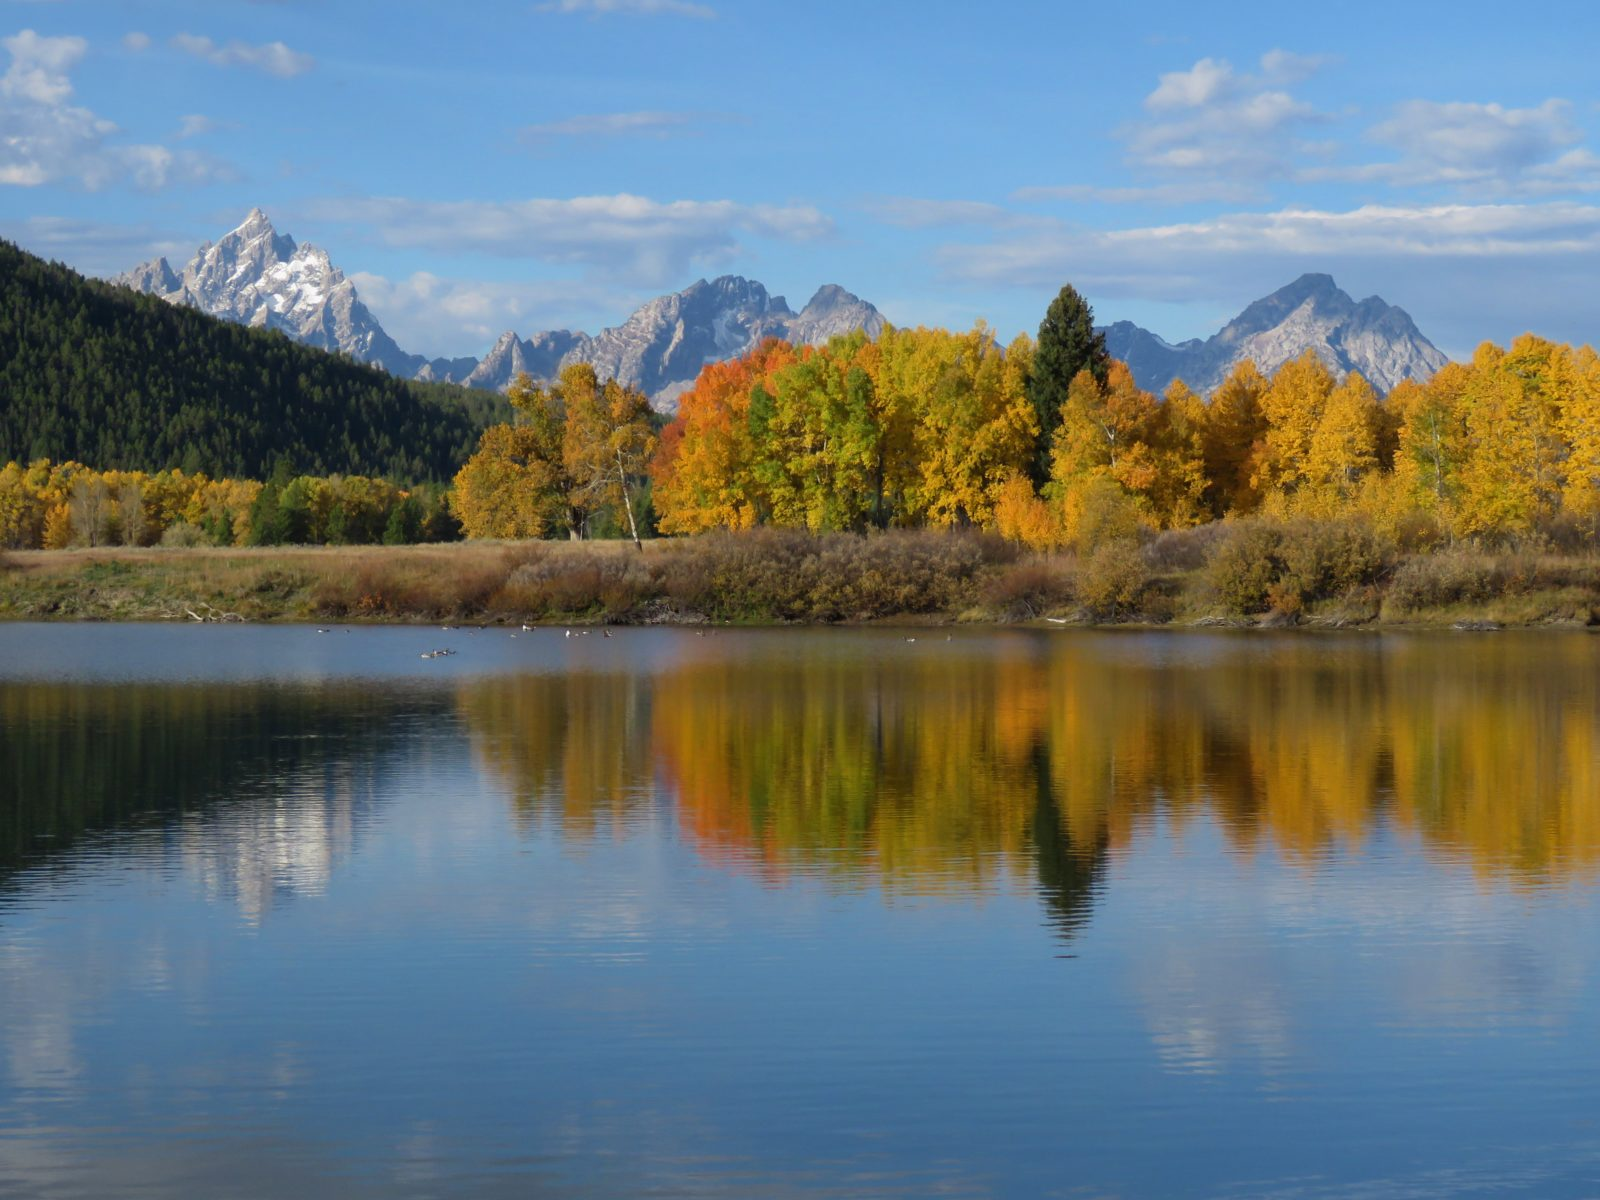 The Other Side of Oxbow Bend